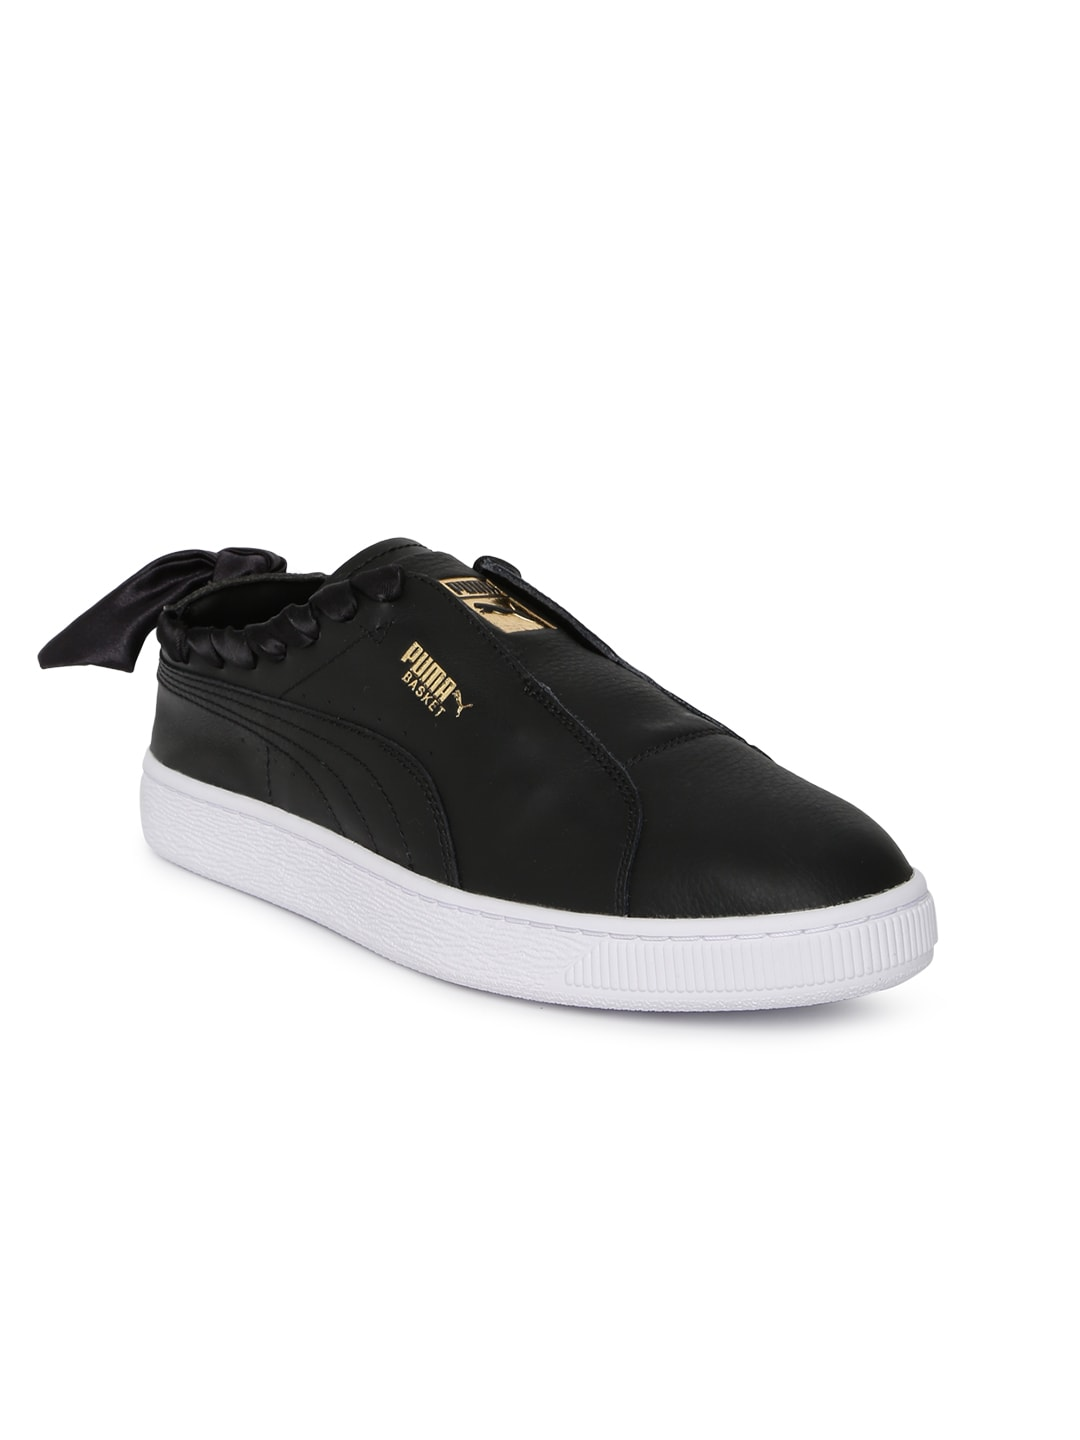 2c0b909300 Bow Casual Shoes - Buy Bow Casual Shoes online in India